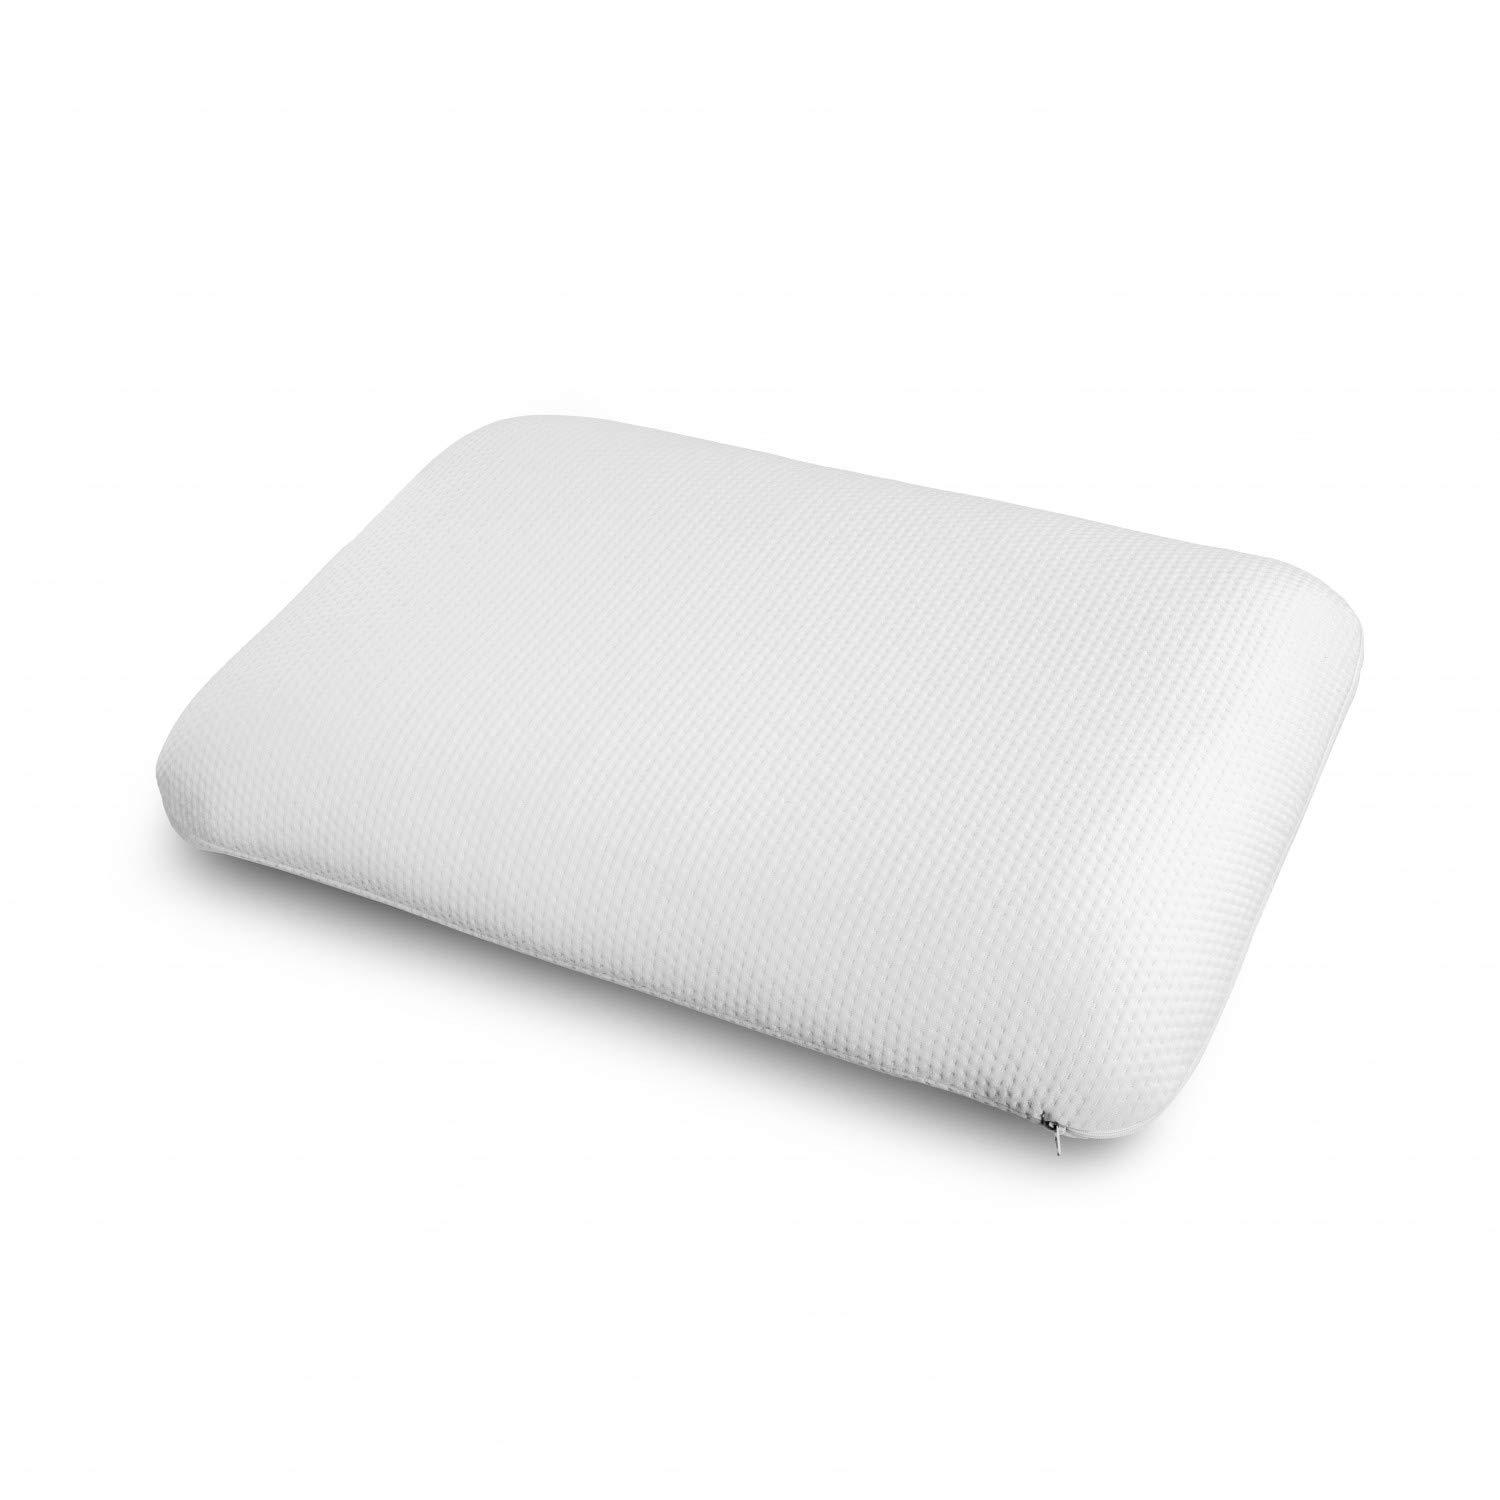 Ambesonne Visco Foam Pillow for Stiff Neck, Airing Holes Cooling Soft Pad with Health Benefits Medical Effects Side Back and Stomach Sleepers Washable Polyester Cover, 30'' X 20'' X 5.5'', White